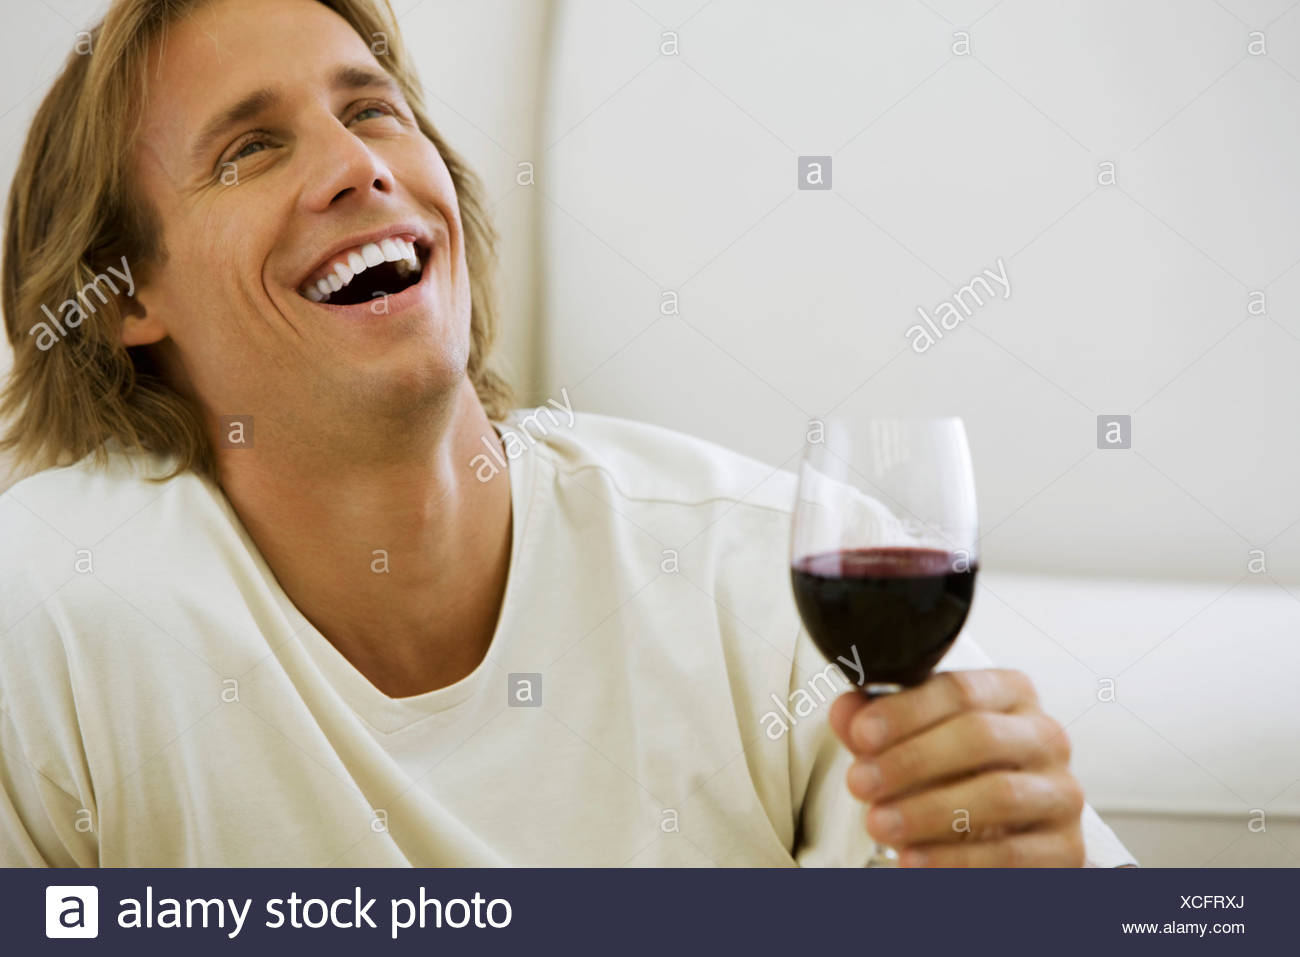 Man holding glass of red wine, laughing - Stock Image